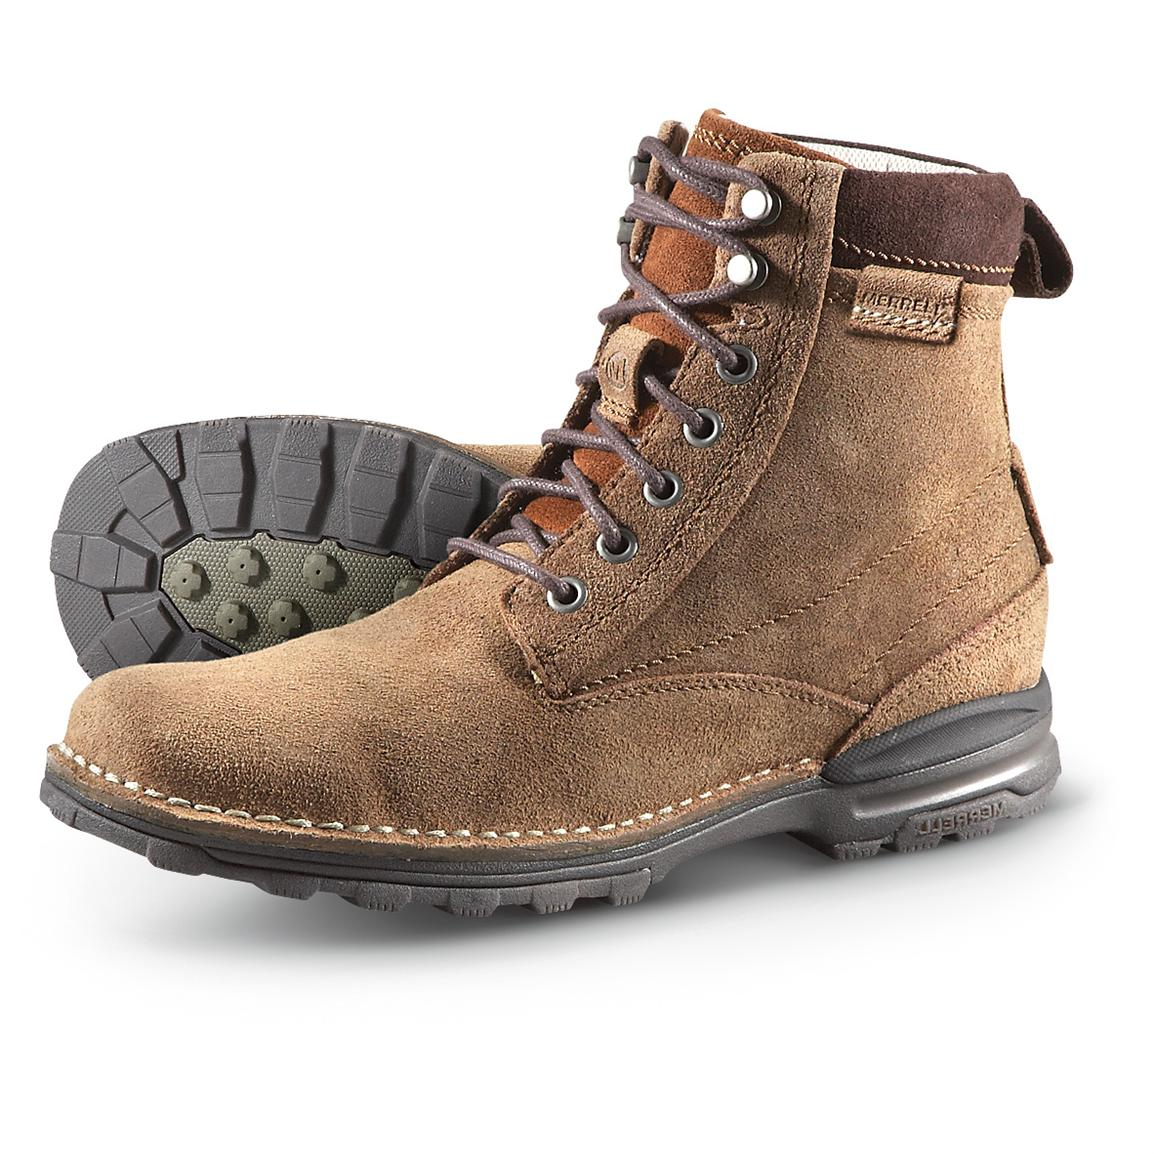 Hiker Work Boots Boot Yc